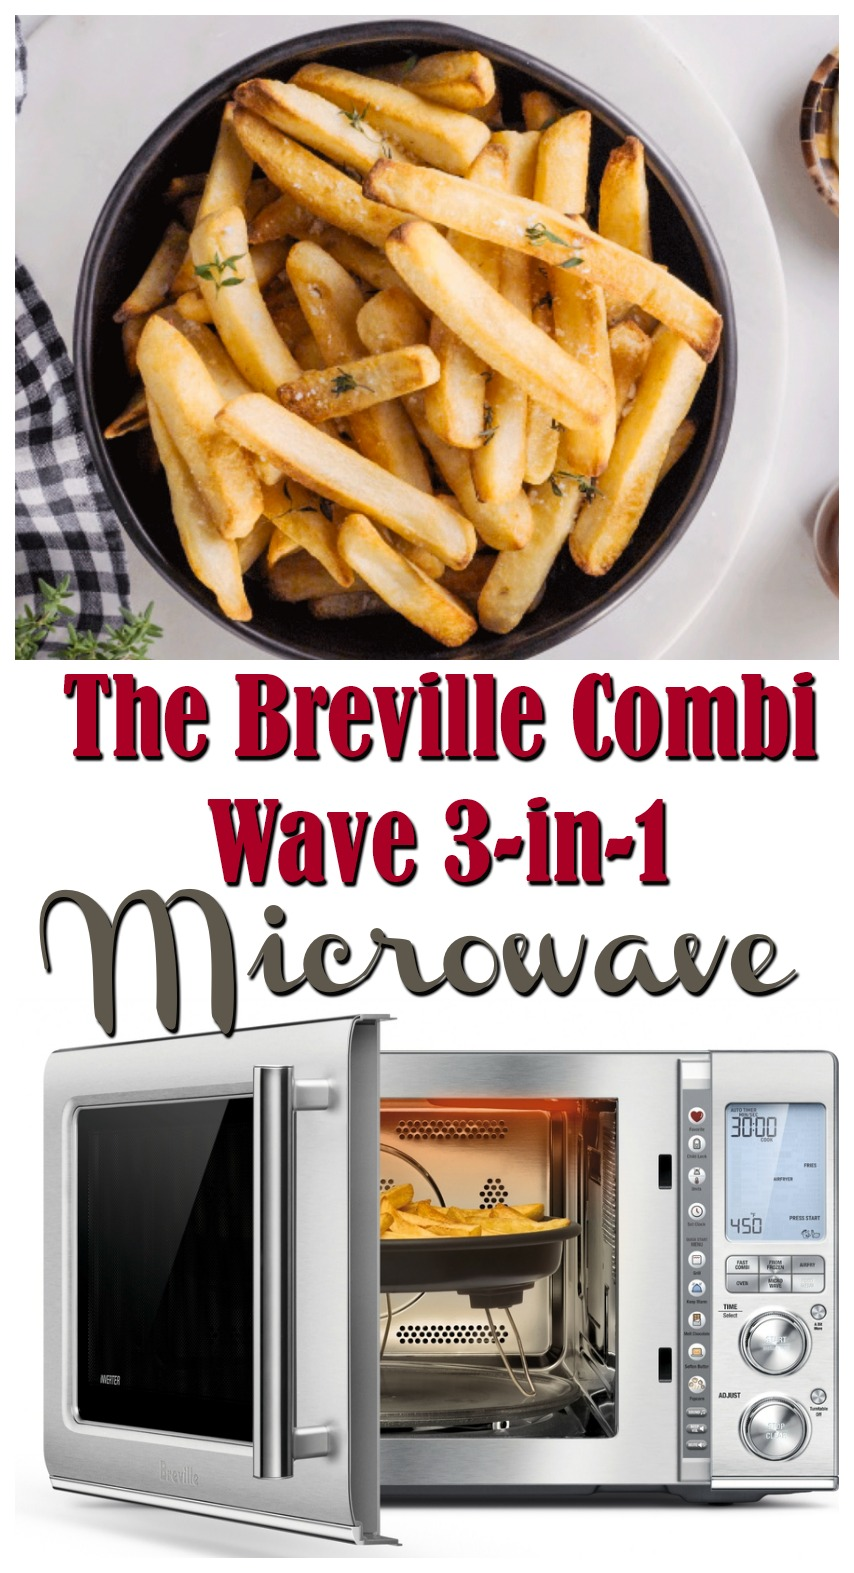 The Breville Combi Wave 3-in-1 Microwave- Makes Cooking Fun in only 1 Appliance! #BestBuy #ad #Breville #WaveMic #BrevilleWave